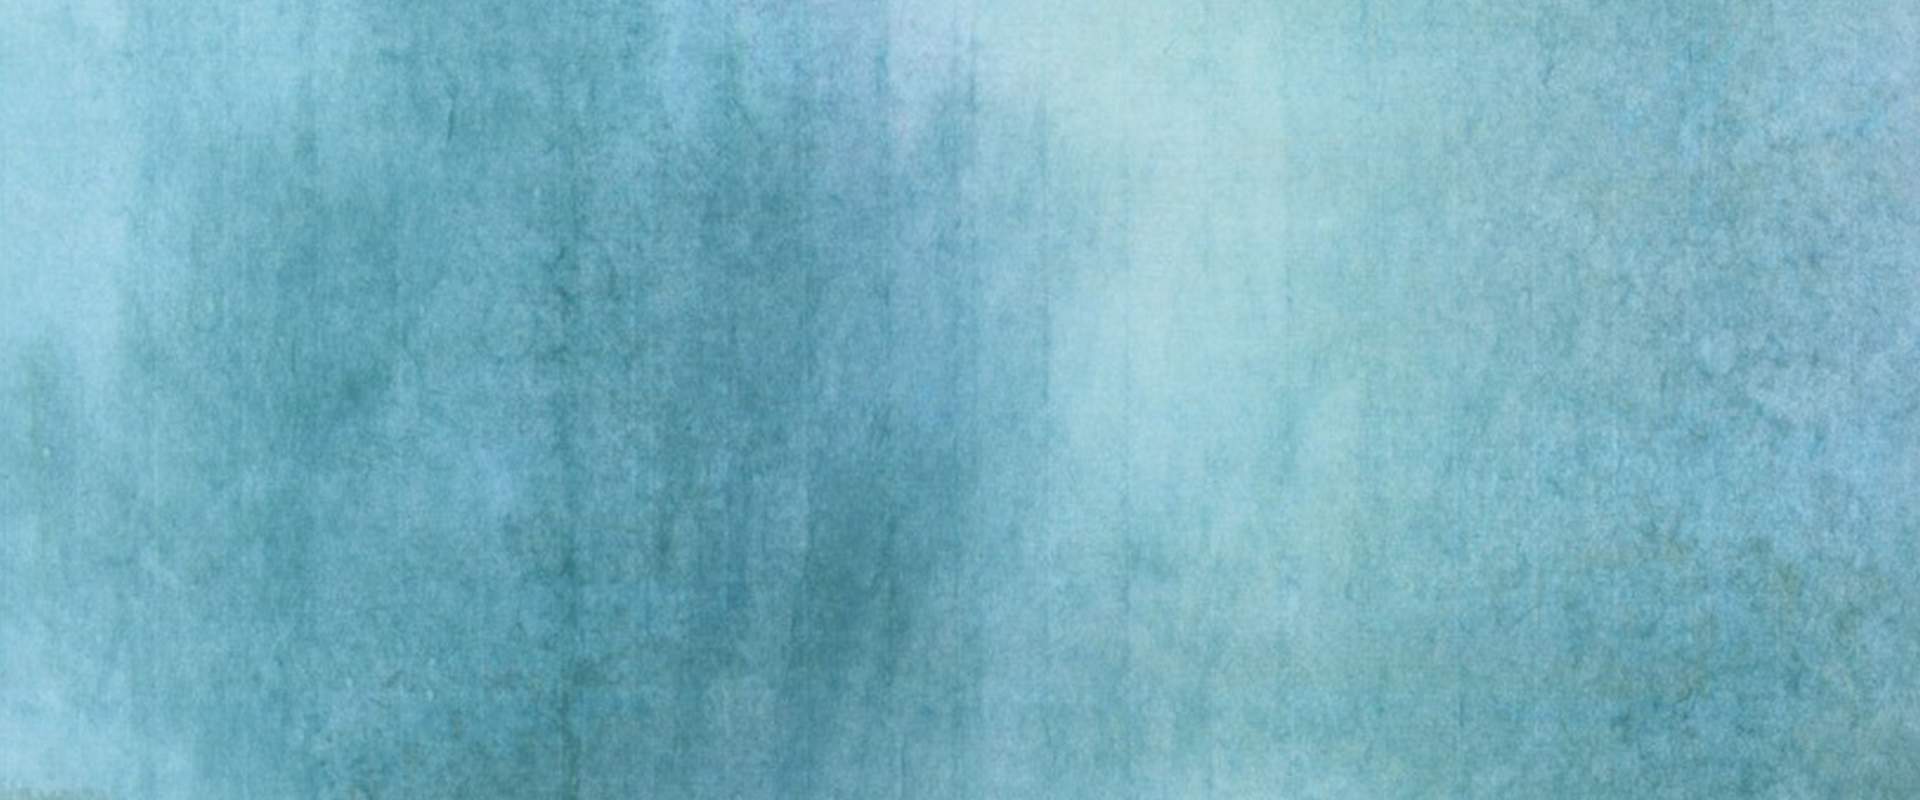 pastel colors of ink texture texture map  elegant  plain  jane background image for free download